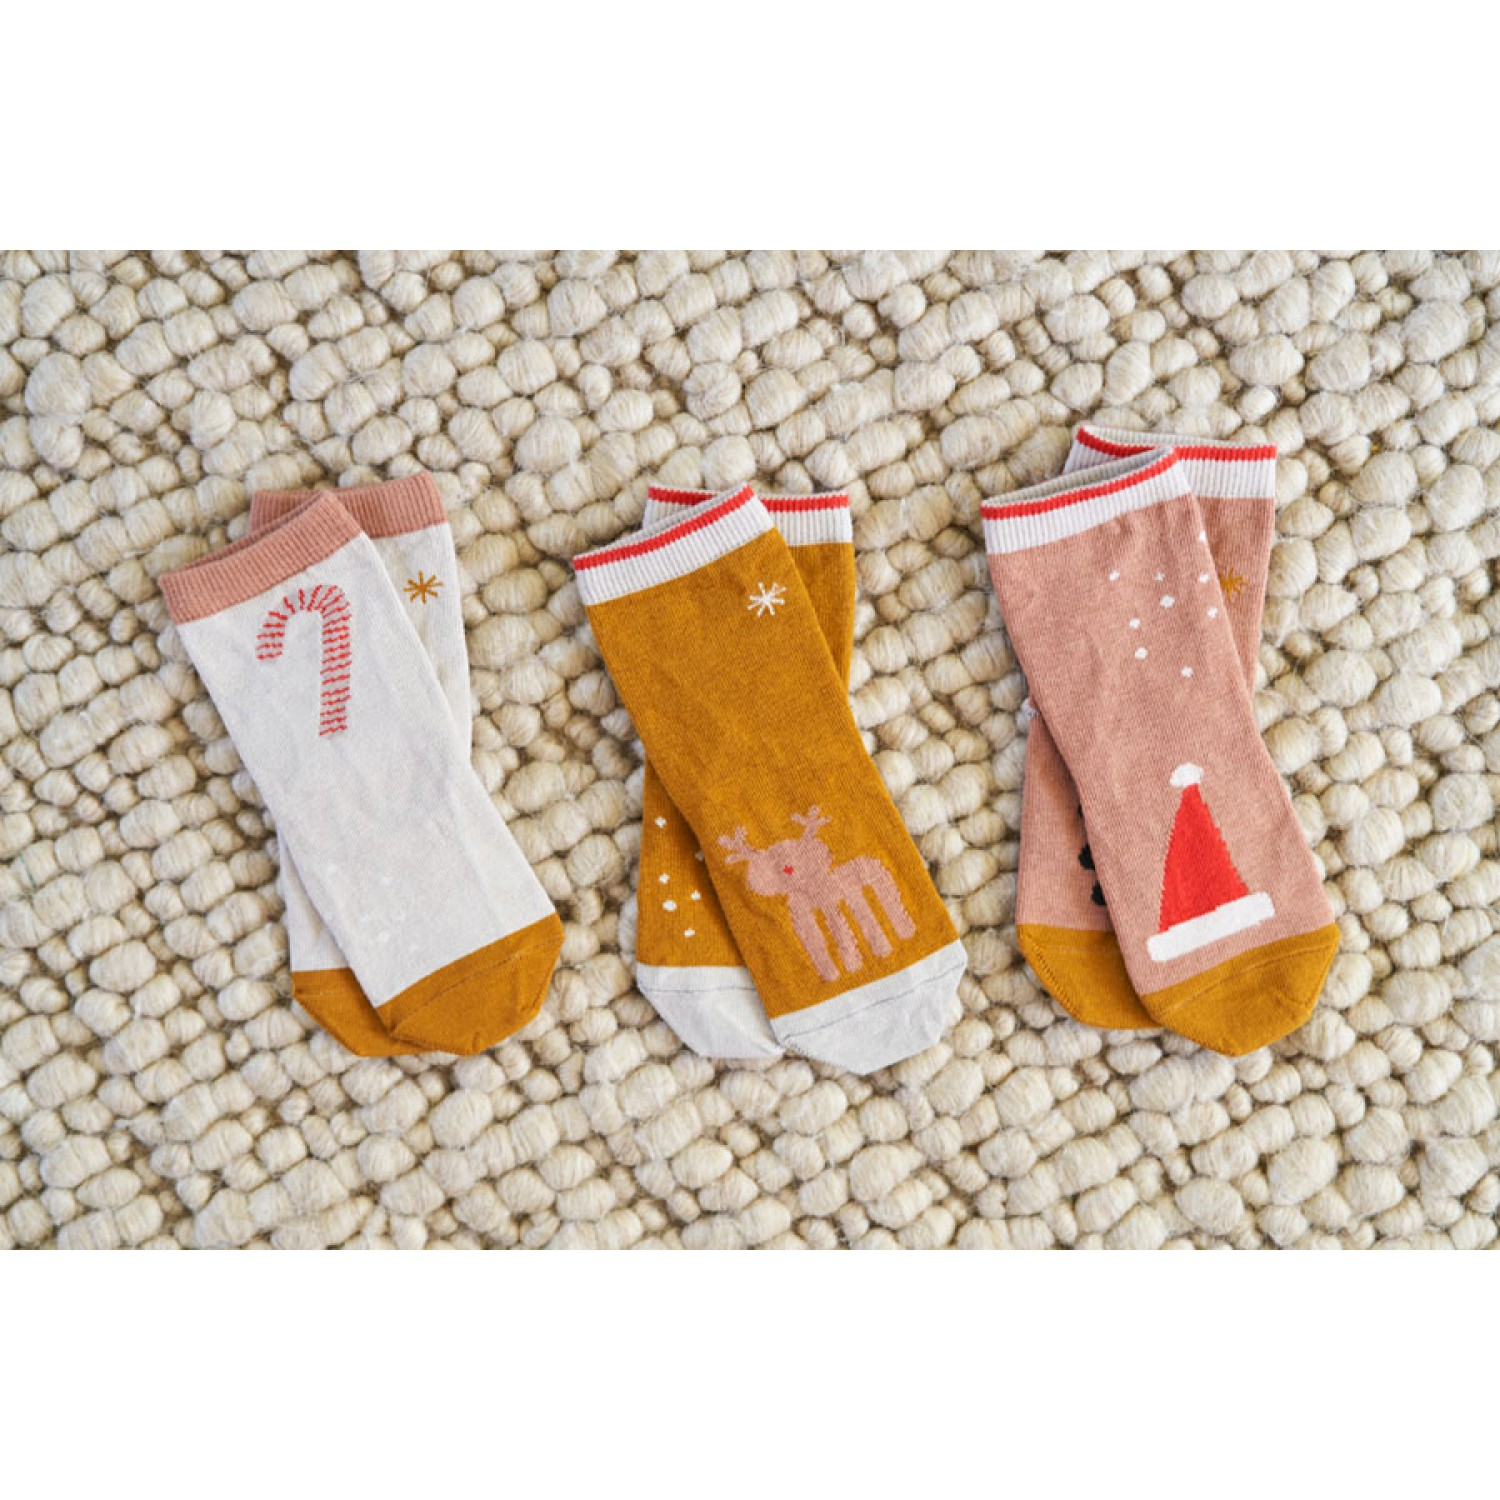 Silas Cotton Socks 3 Pack - Holiday tuscany rose multi mix